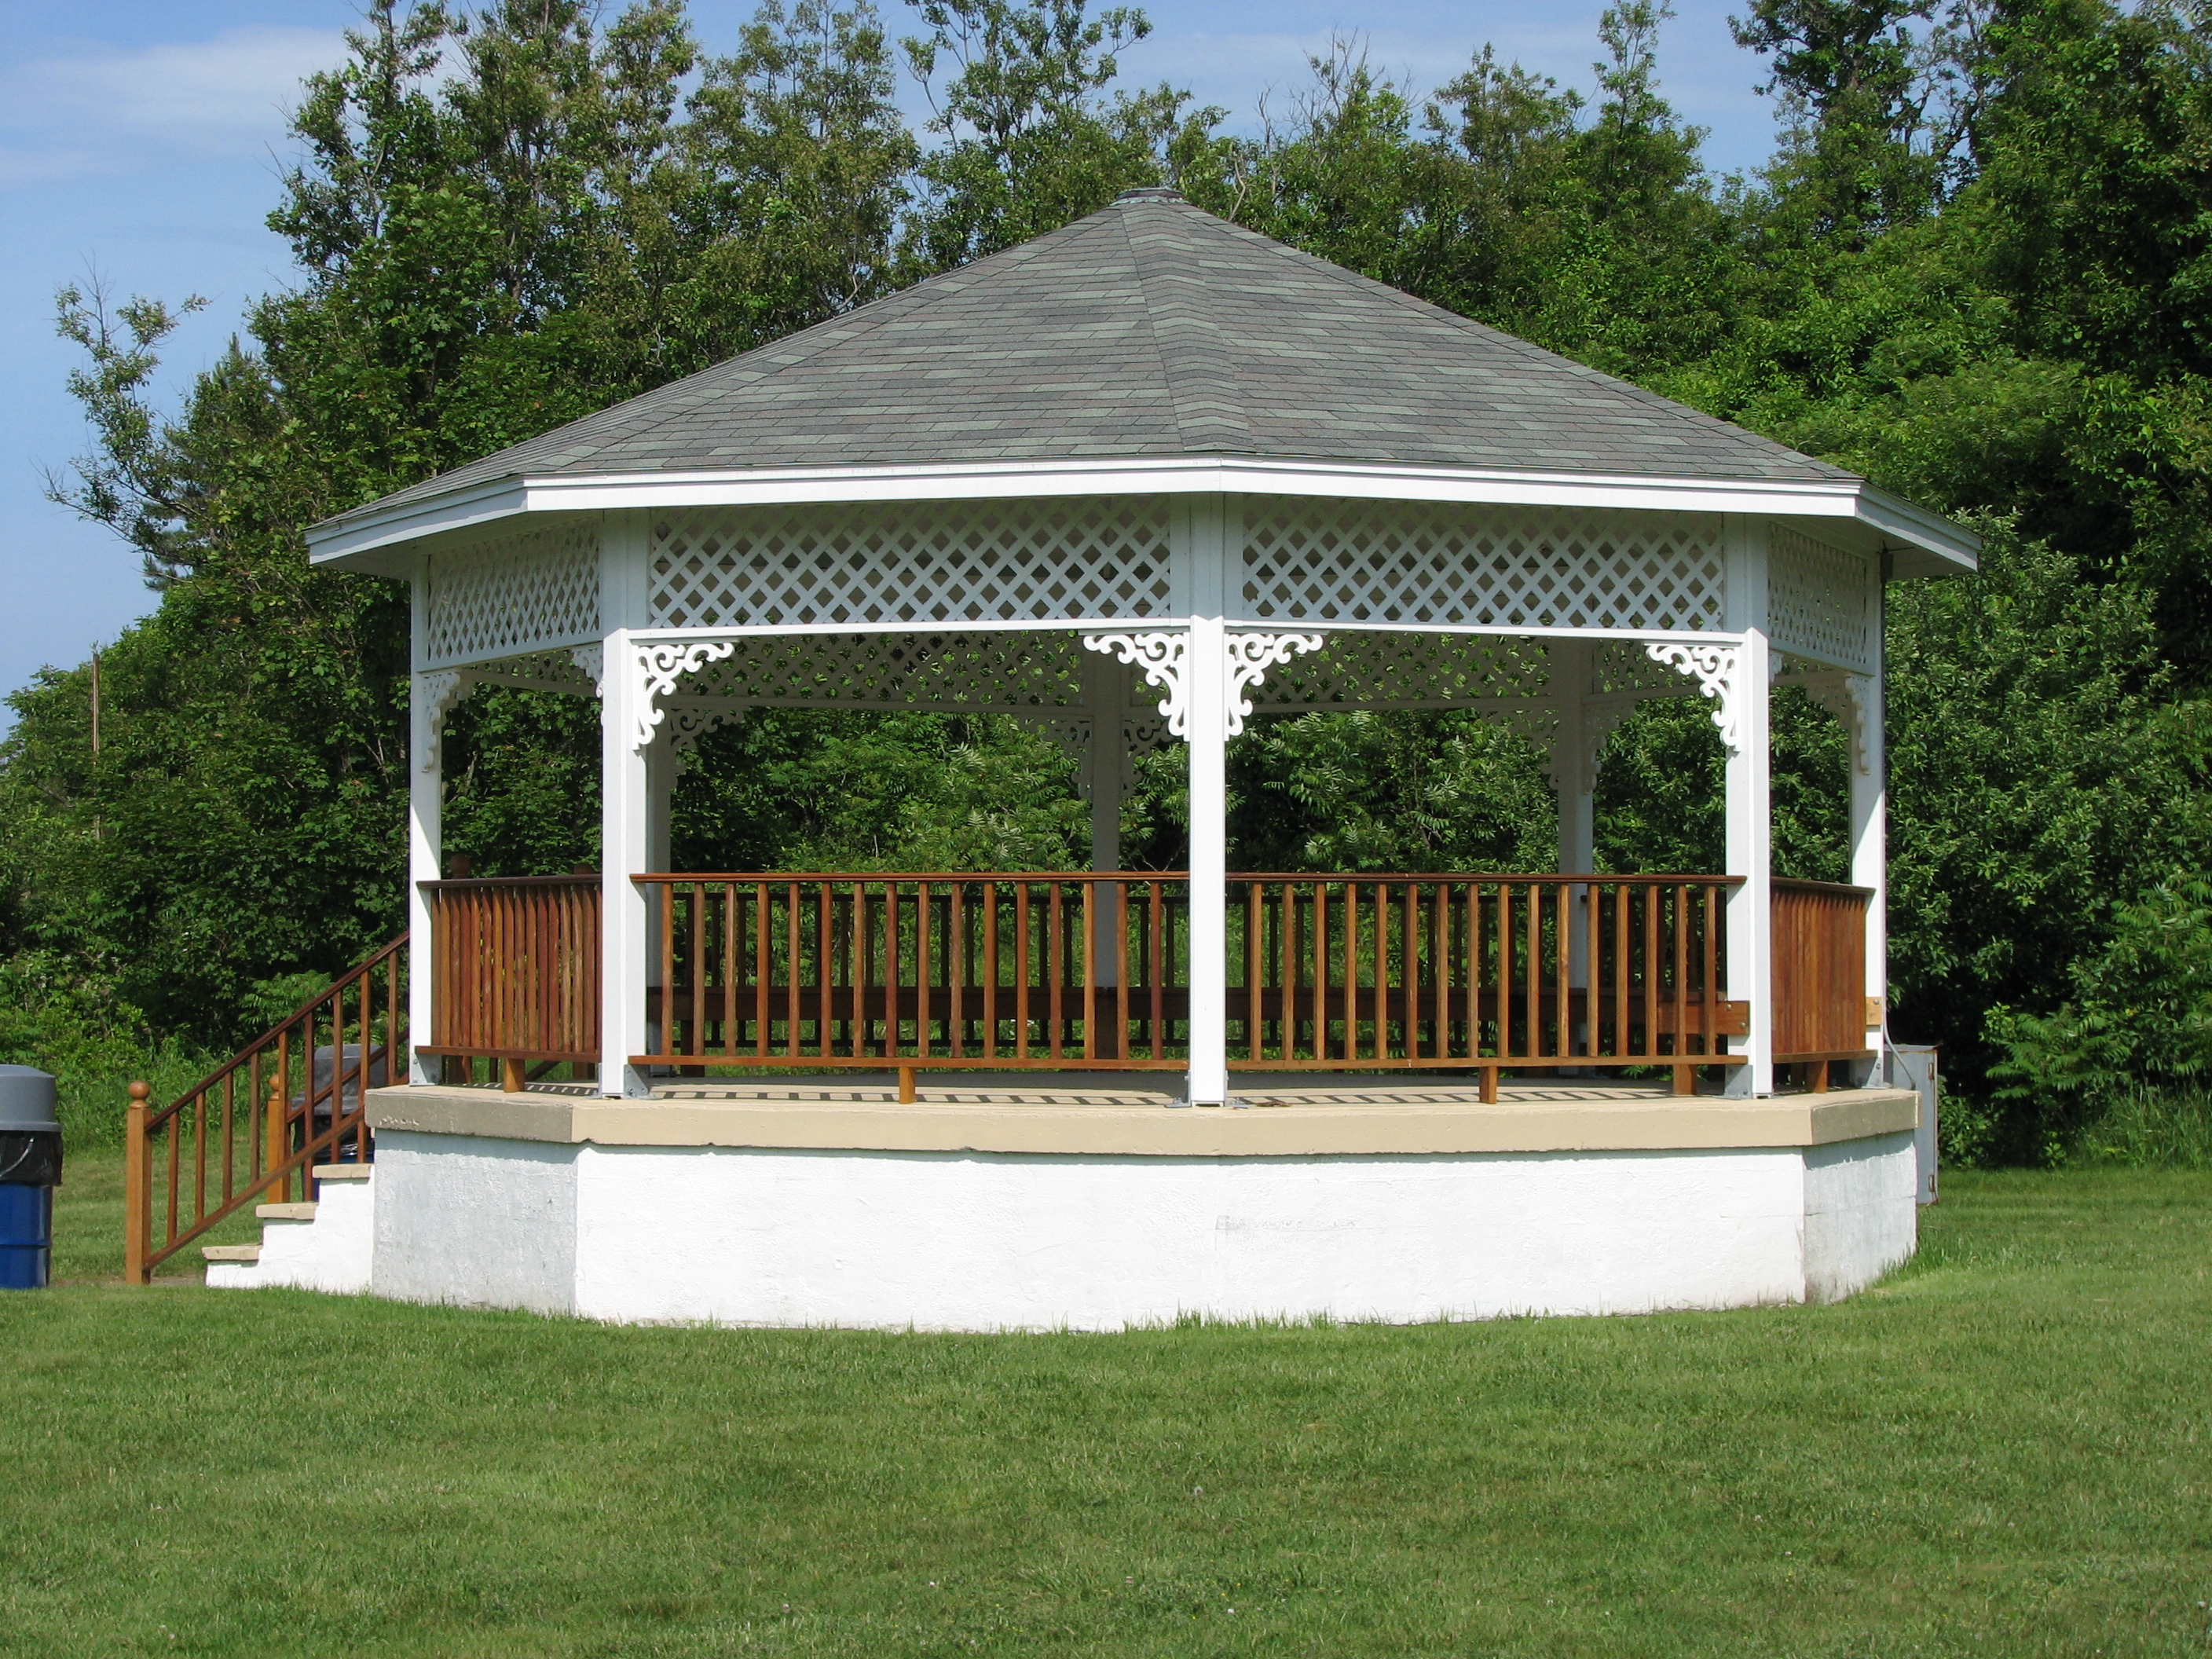 Description Bailey's Hill gazebo in Nahant, Massachusetts.jpg